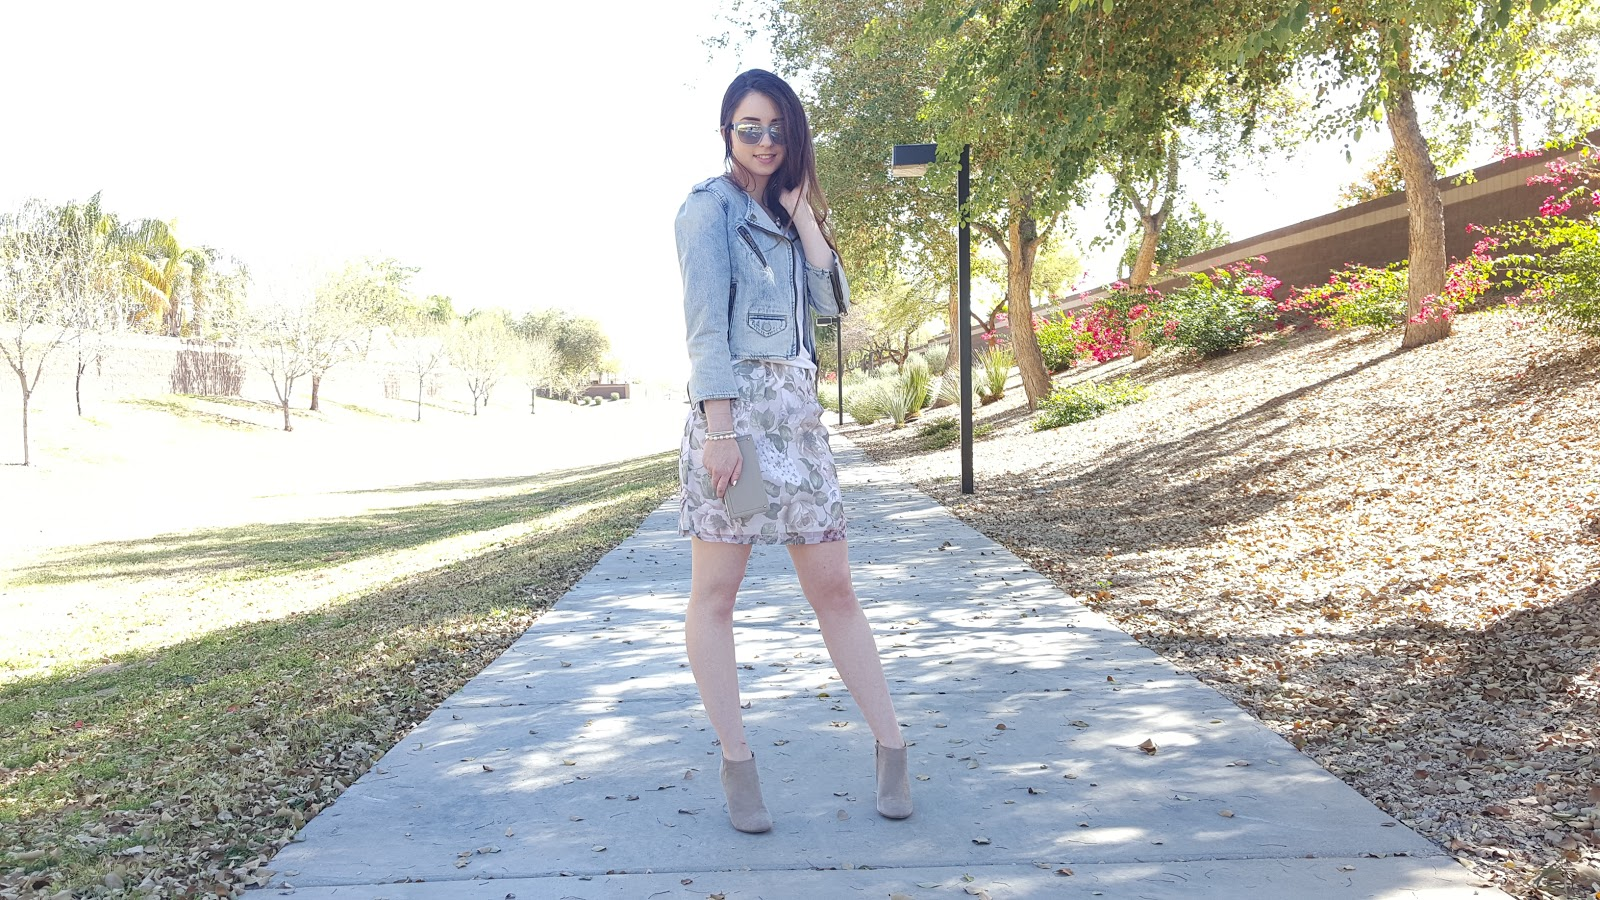 Spring outfit- pastels and neutrals with a denim jacket